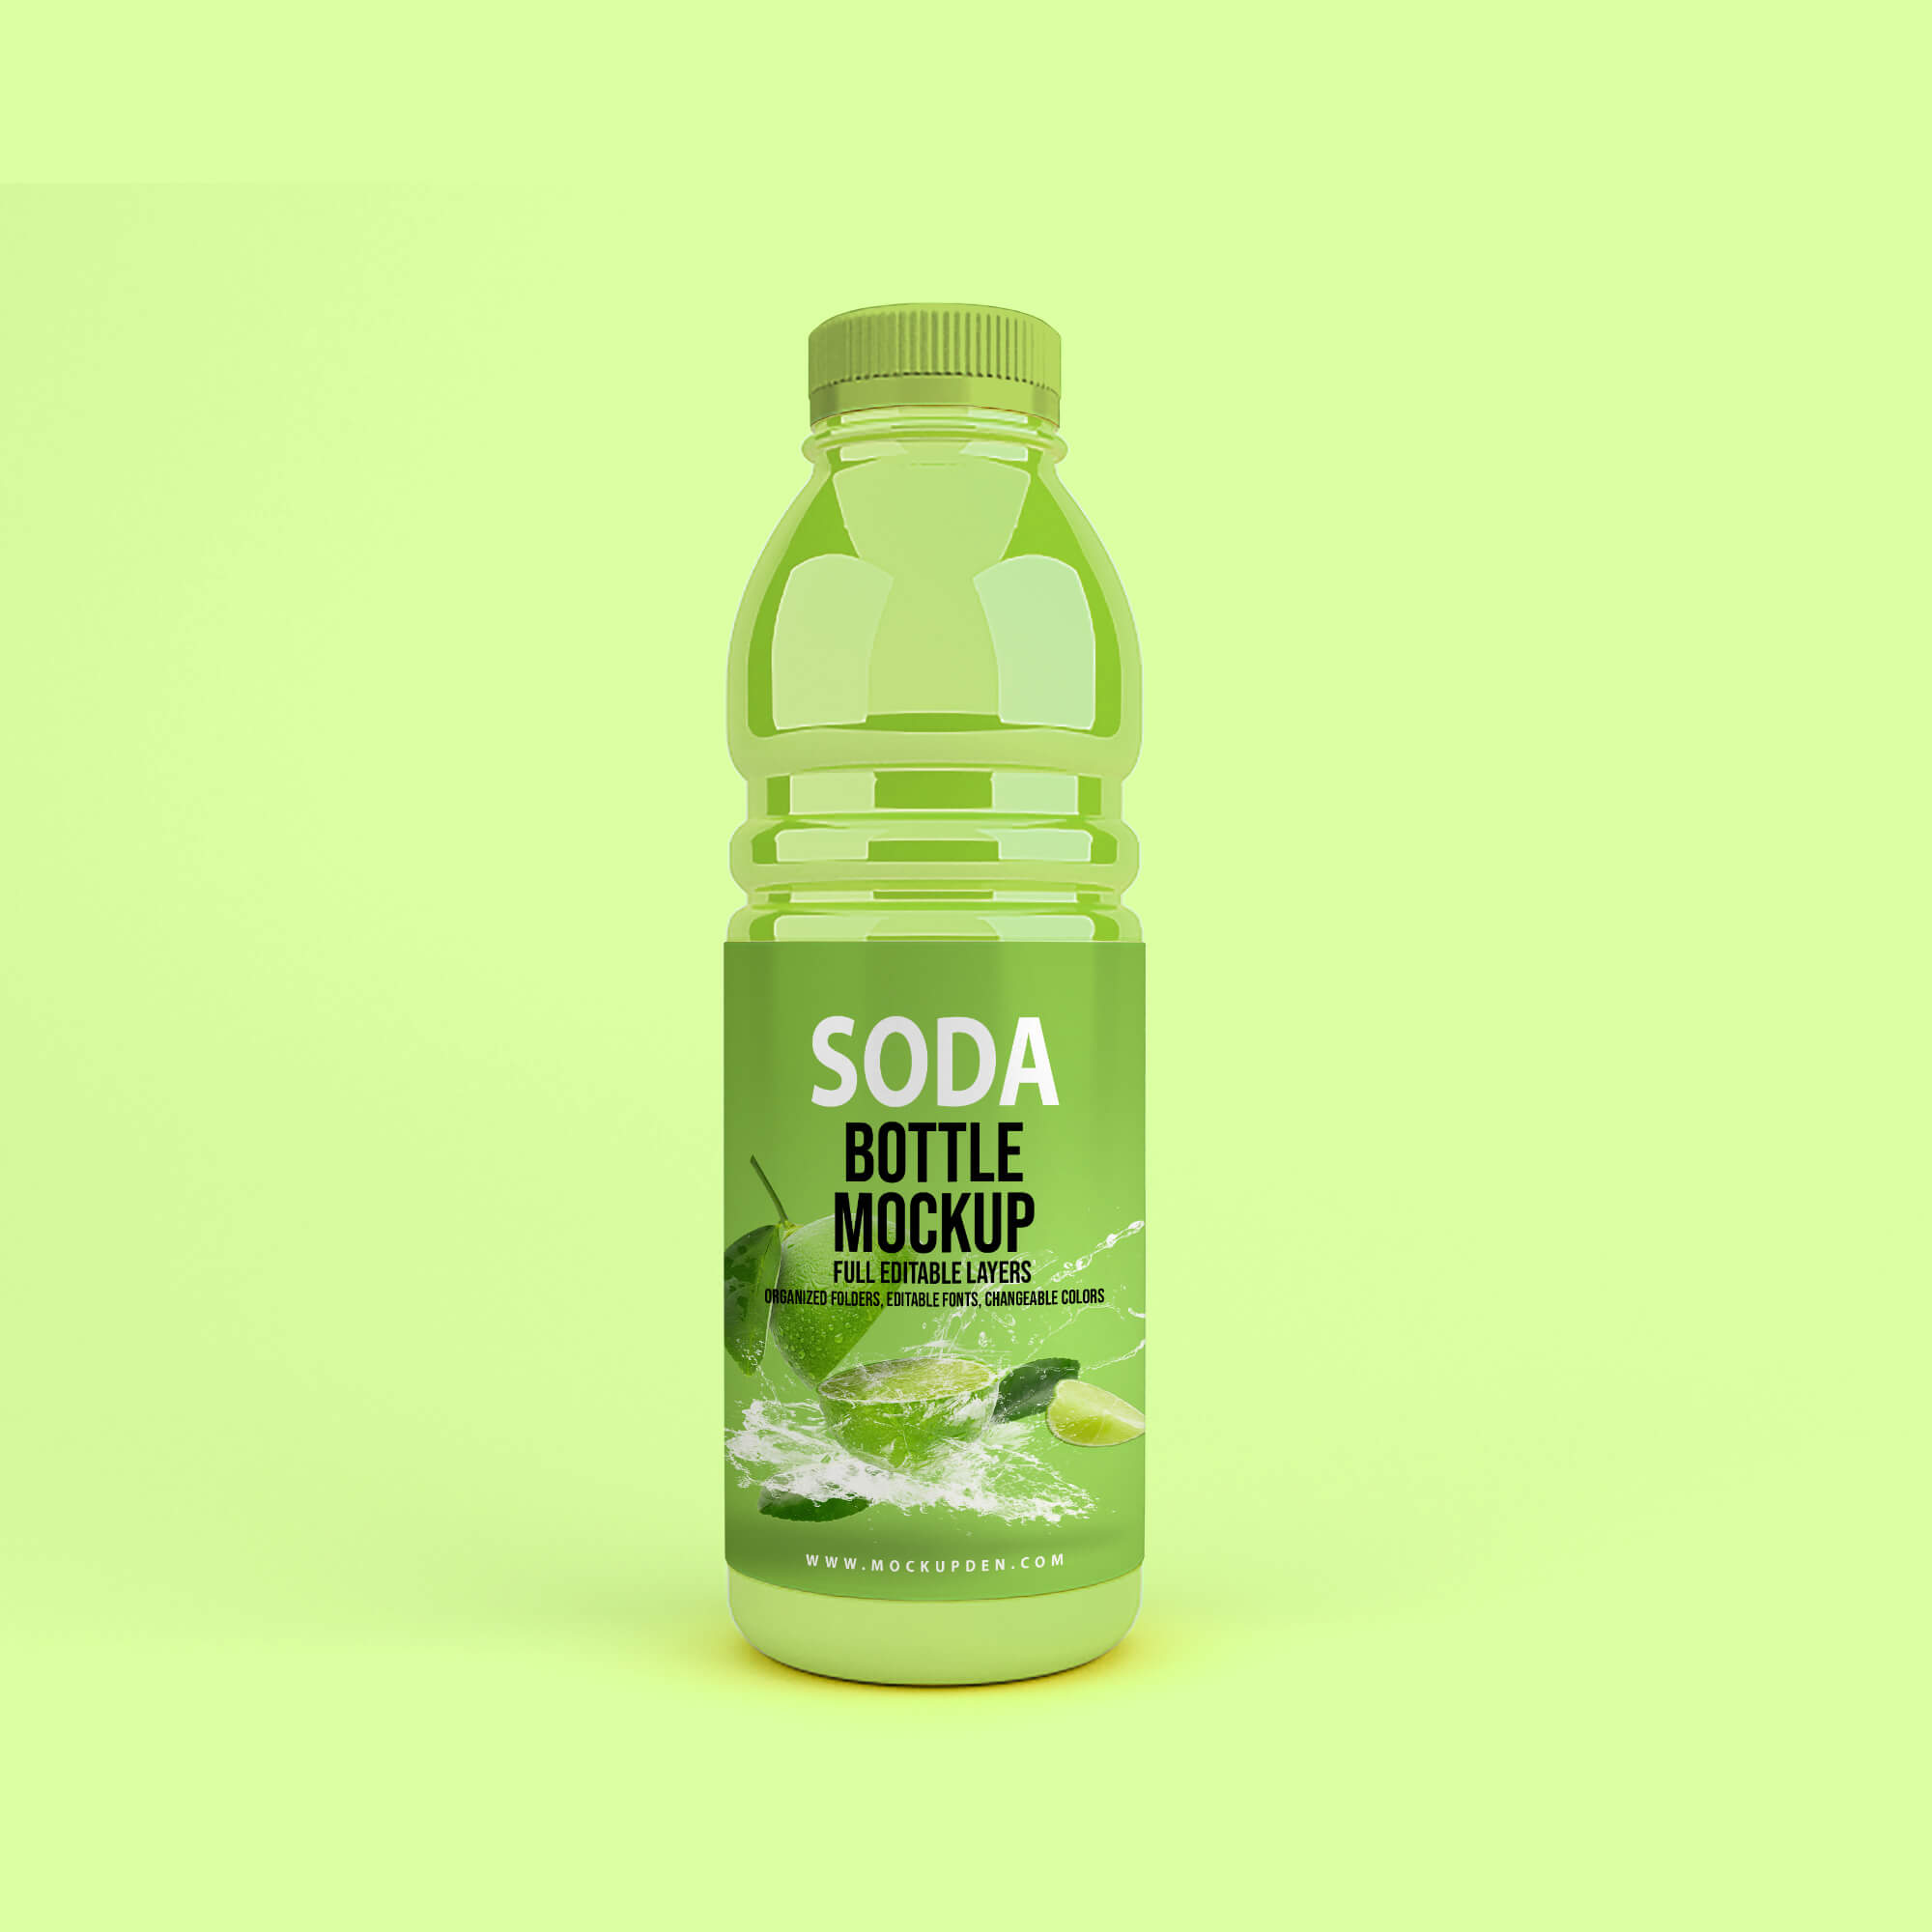 Design Free Soda Bottle Mockup PSD Template (2)